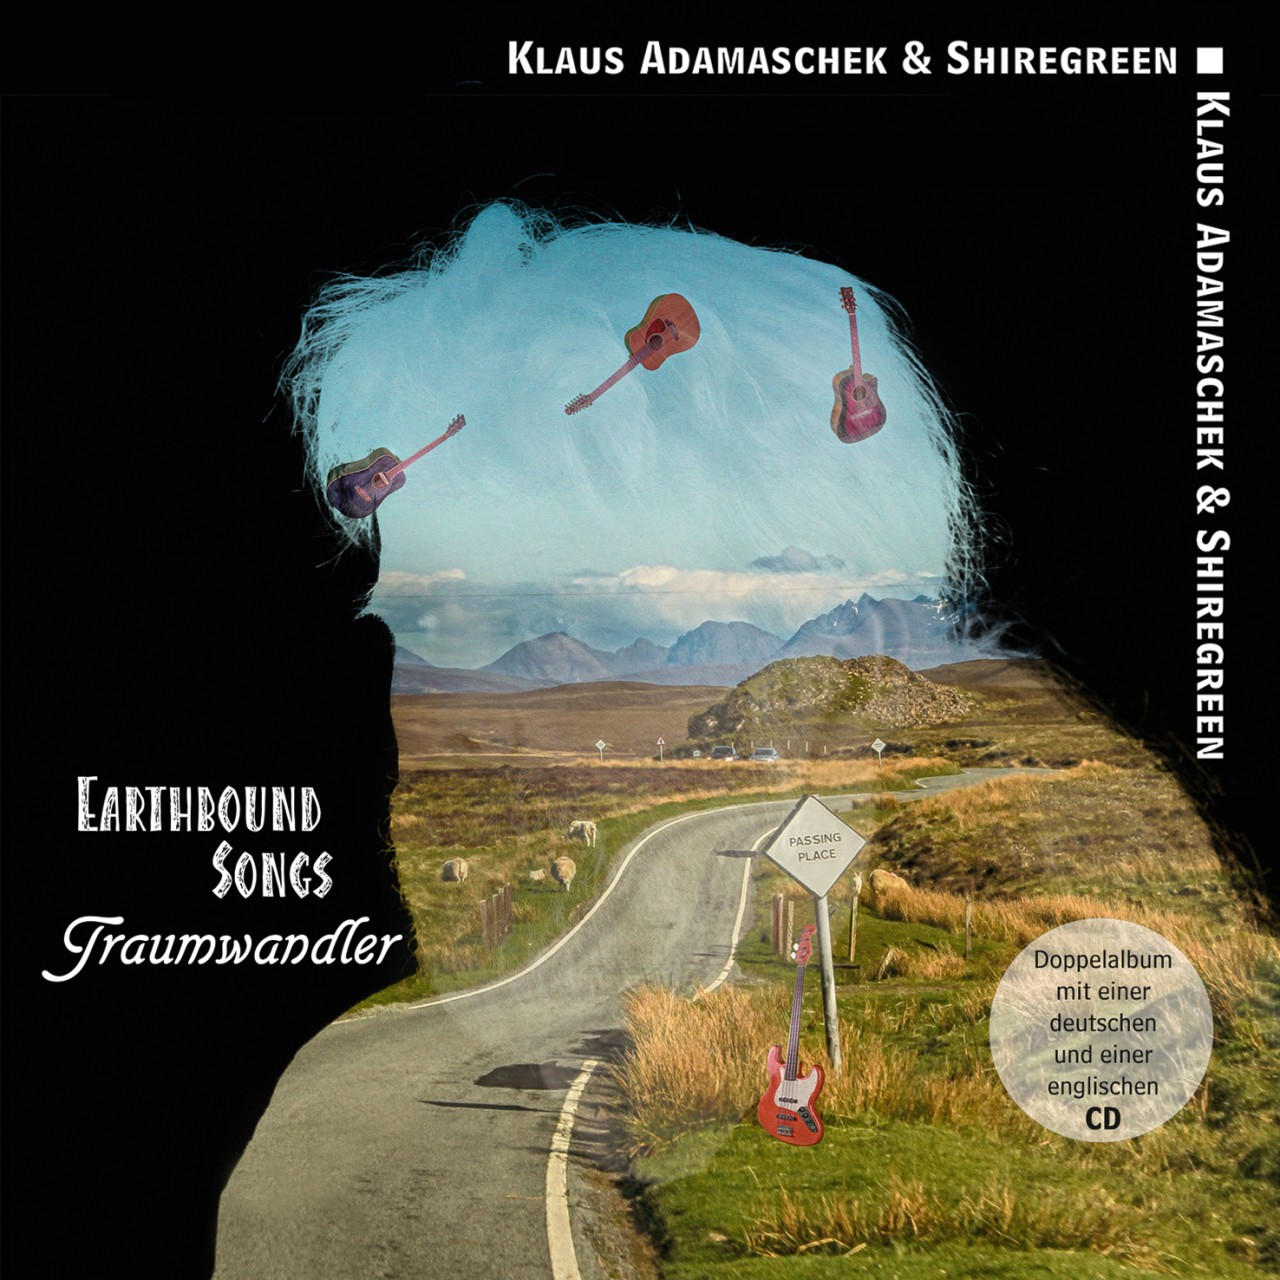 Bildnachweis: Stengel Fotografie Bad Hersfeld - Albumcover Earthbound Songs / Traumwandler